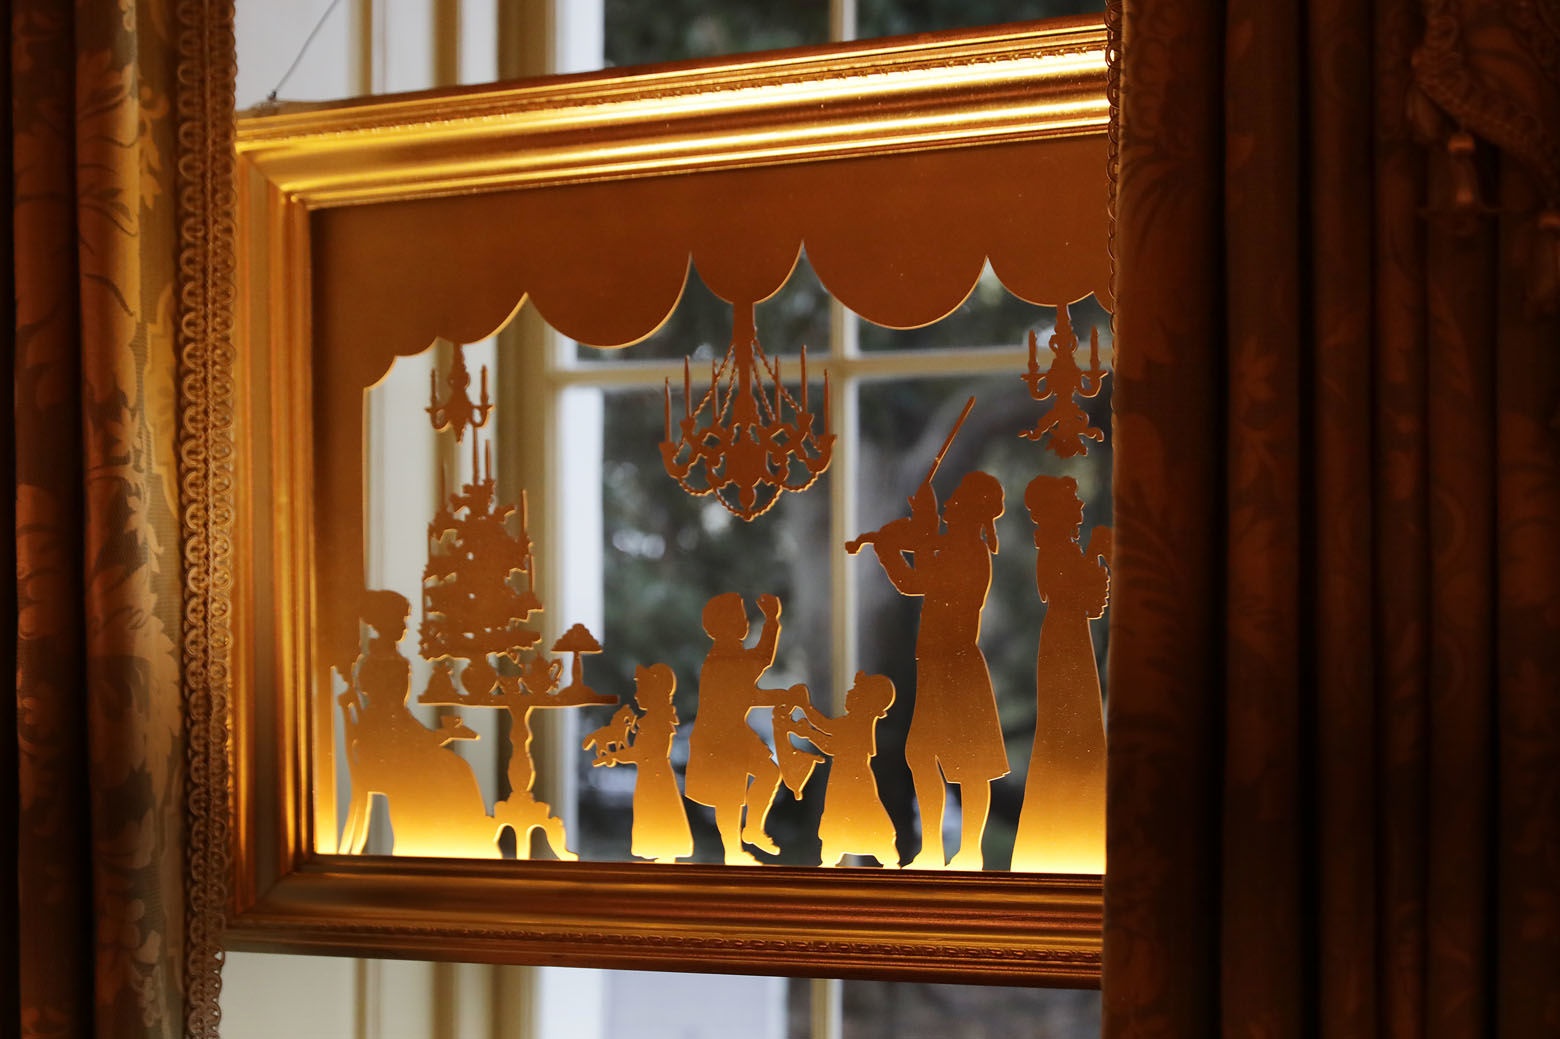 WASHINGTON, DC - NOVEMBER 26: A window silhouette of U.S. President Thomas Jefferson playing the violin for his family in 1805 hangs in a window of the Vermeil Room which is decorated for the holidays at the White House November 26, 2018 in Washington, DC. The 2018 theme of the White House holiday decorations is 'American Treasures,' and features patriotic displays highlighting the country's 'unique heritage.' The White House expects to host 100 open houses and more than 30,000 guests who will tour the topiary trees, architectural models of major U.S. cities, the Gold Star family tree and national monuments in gingerbread. (Photo by Chip Somodevilla/Getty Images)